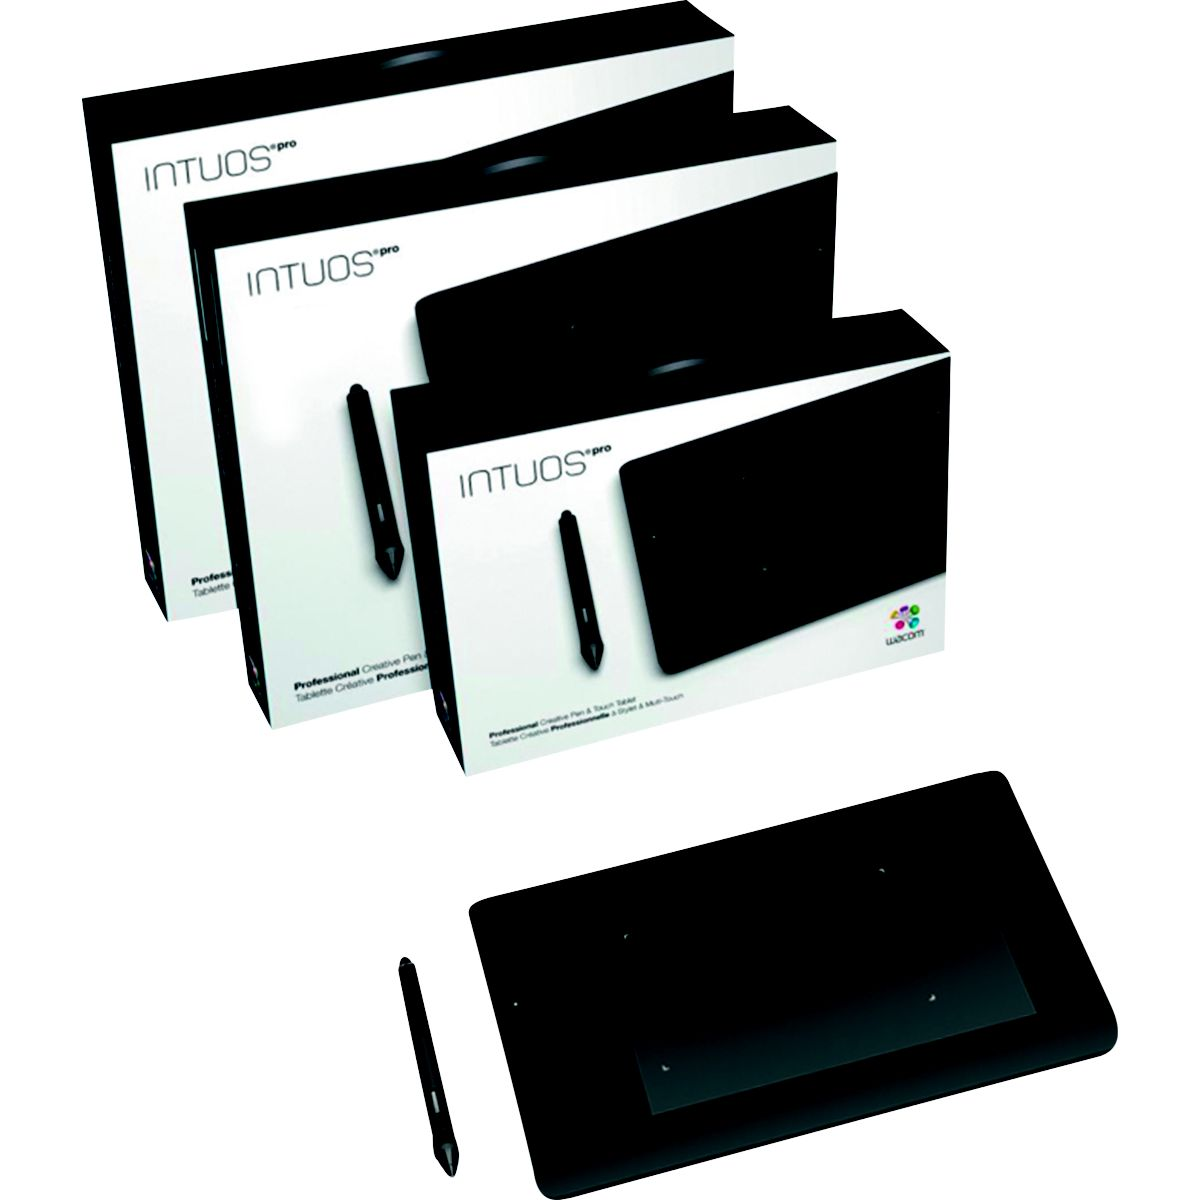 Tablette graphique wacom intuos pro medium – 5 € de remise : code cash5